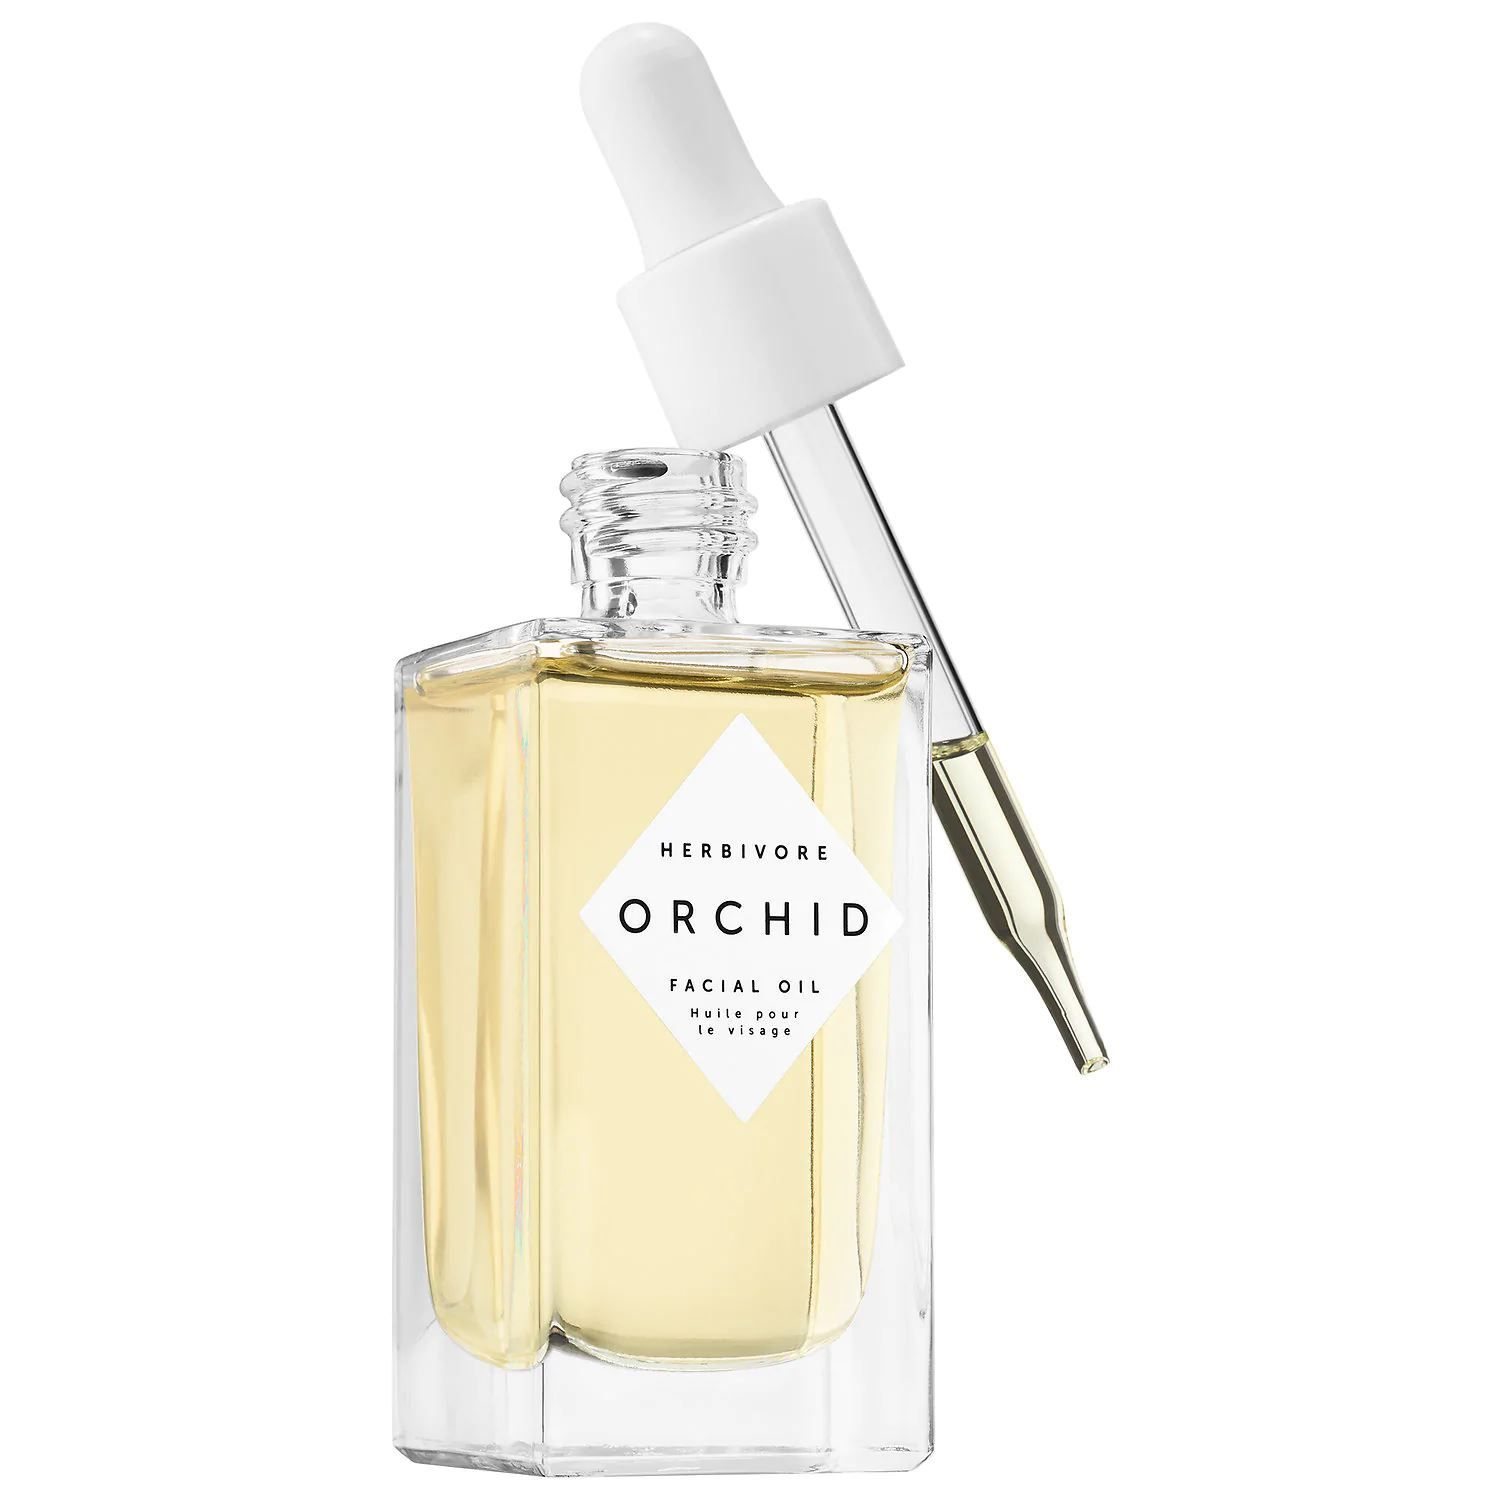 Herbivore Orchid Youth-Preserving Facial Oil